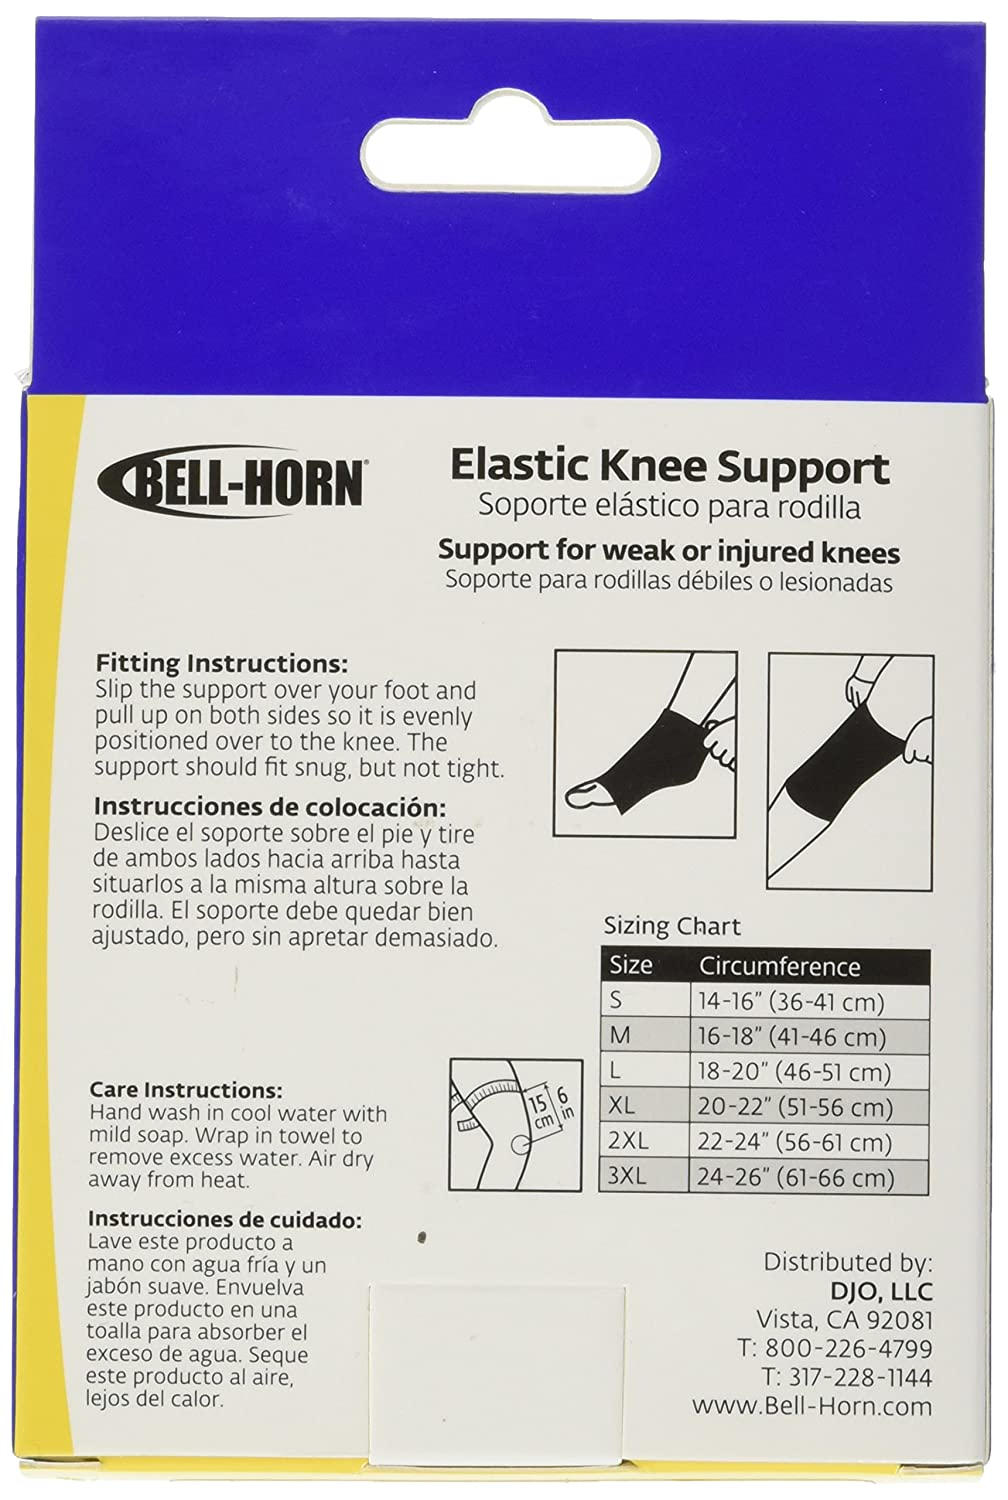 Amazon.com: Bell-Horn Elastic Knee Support/Compression Sleeve, White, XX-Large: Health & Personal Care